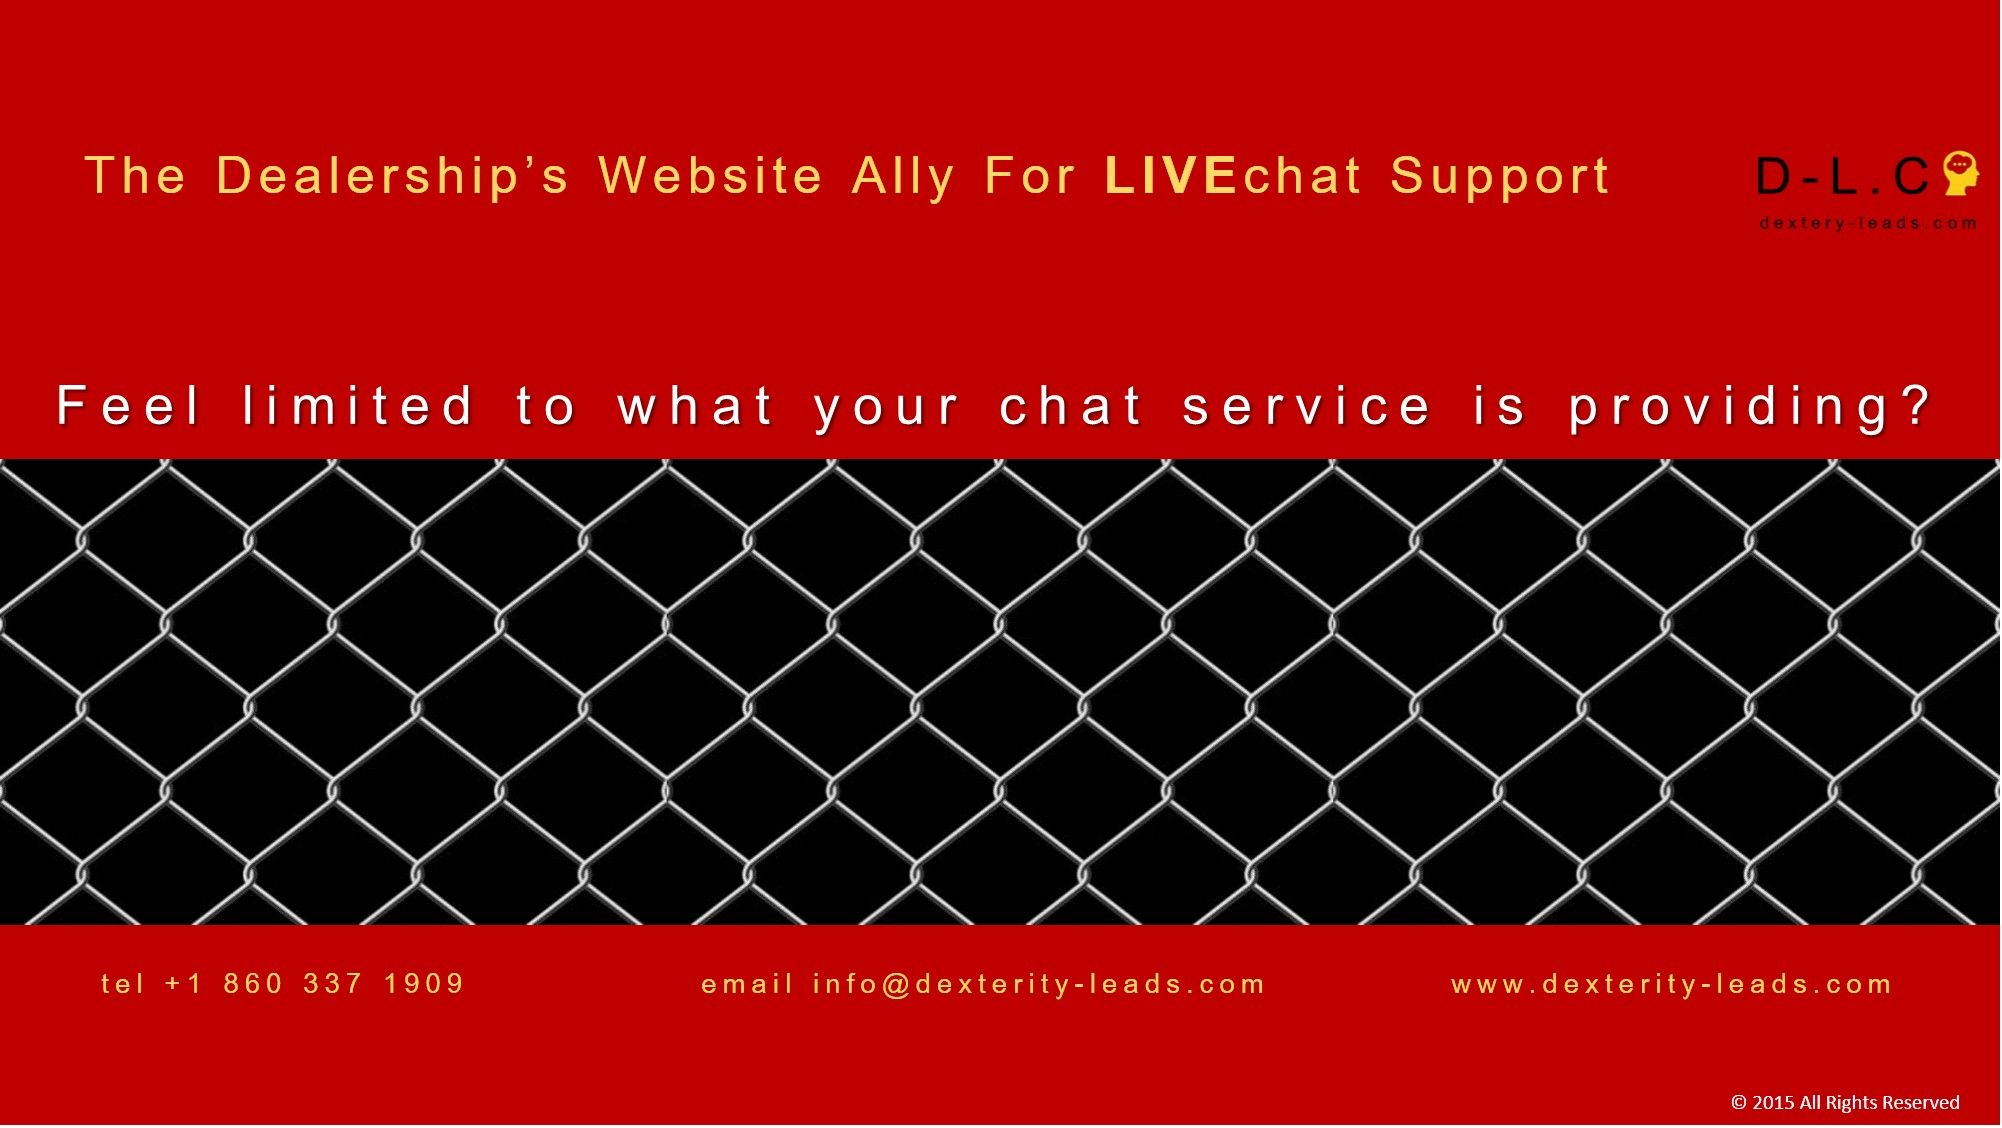 livechat support contact email infodexterity